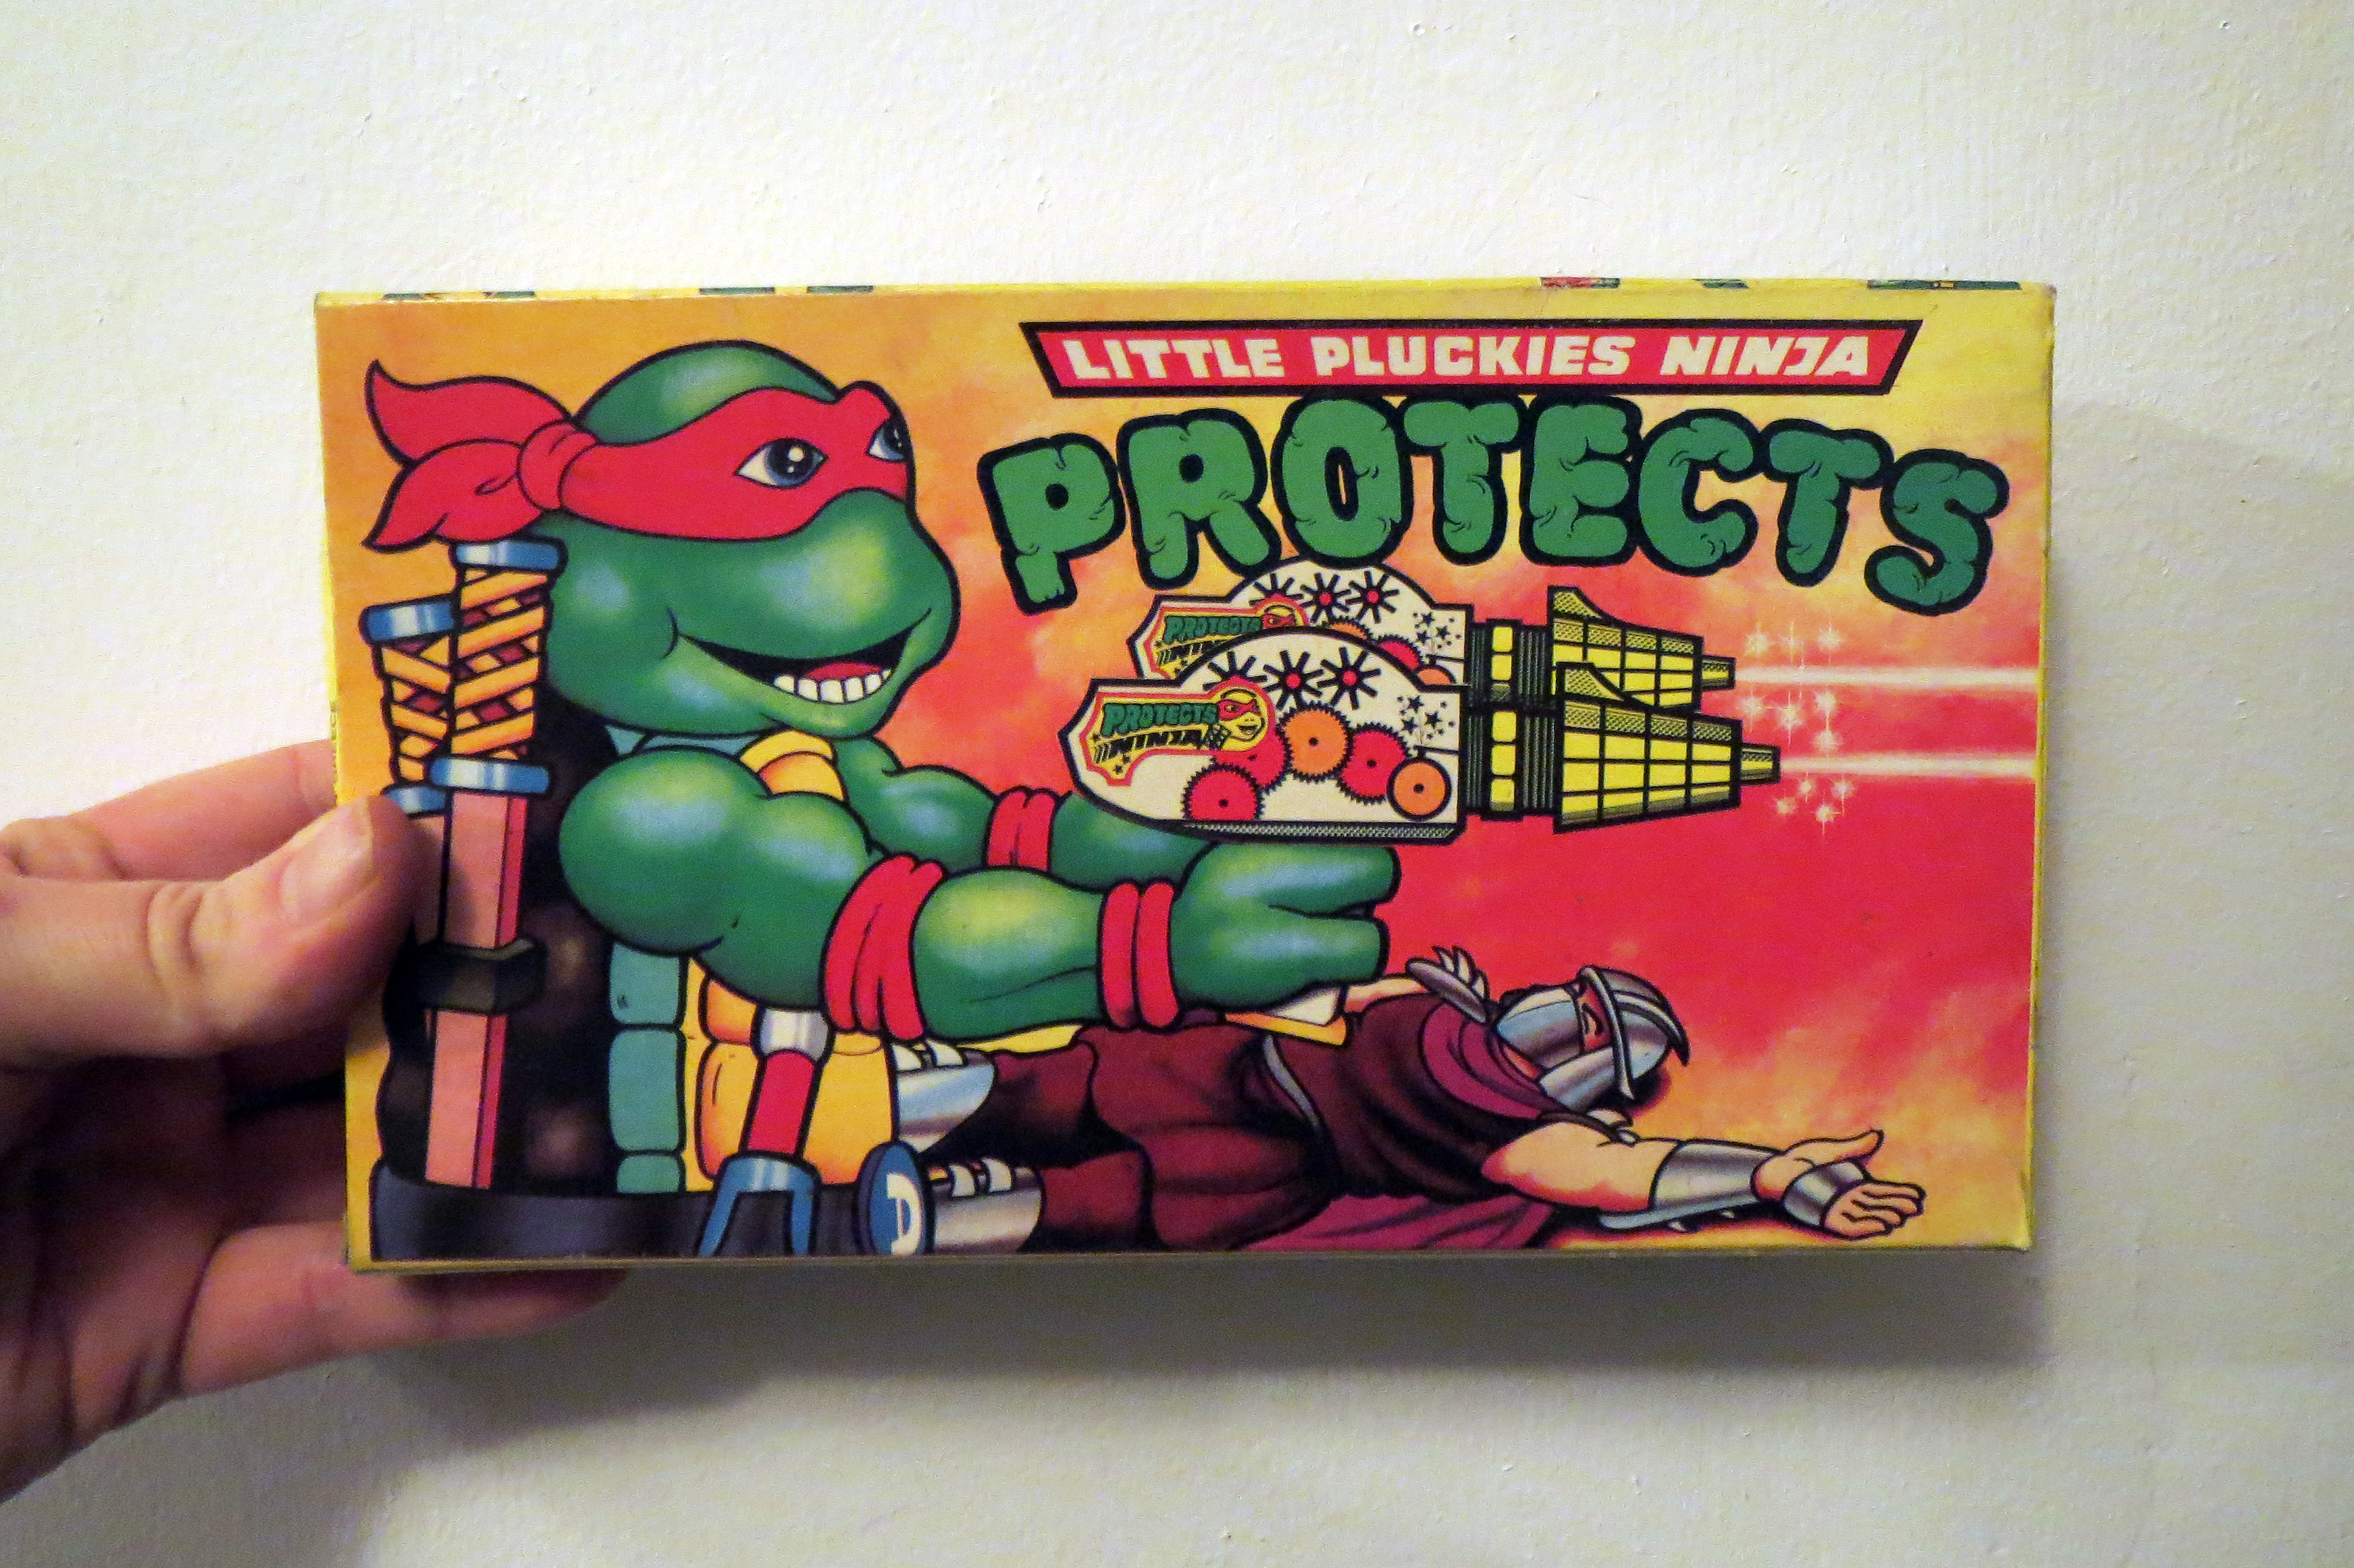 Little-Pluckies-Ninja-Protects-knockoff-